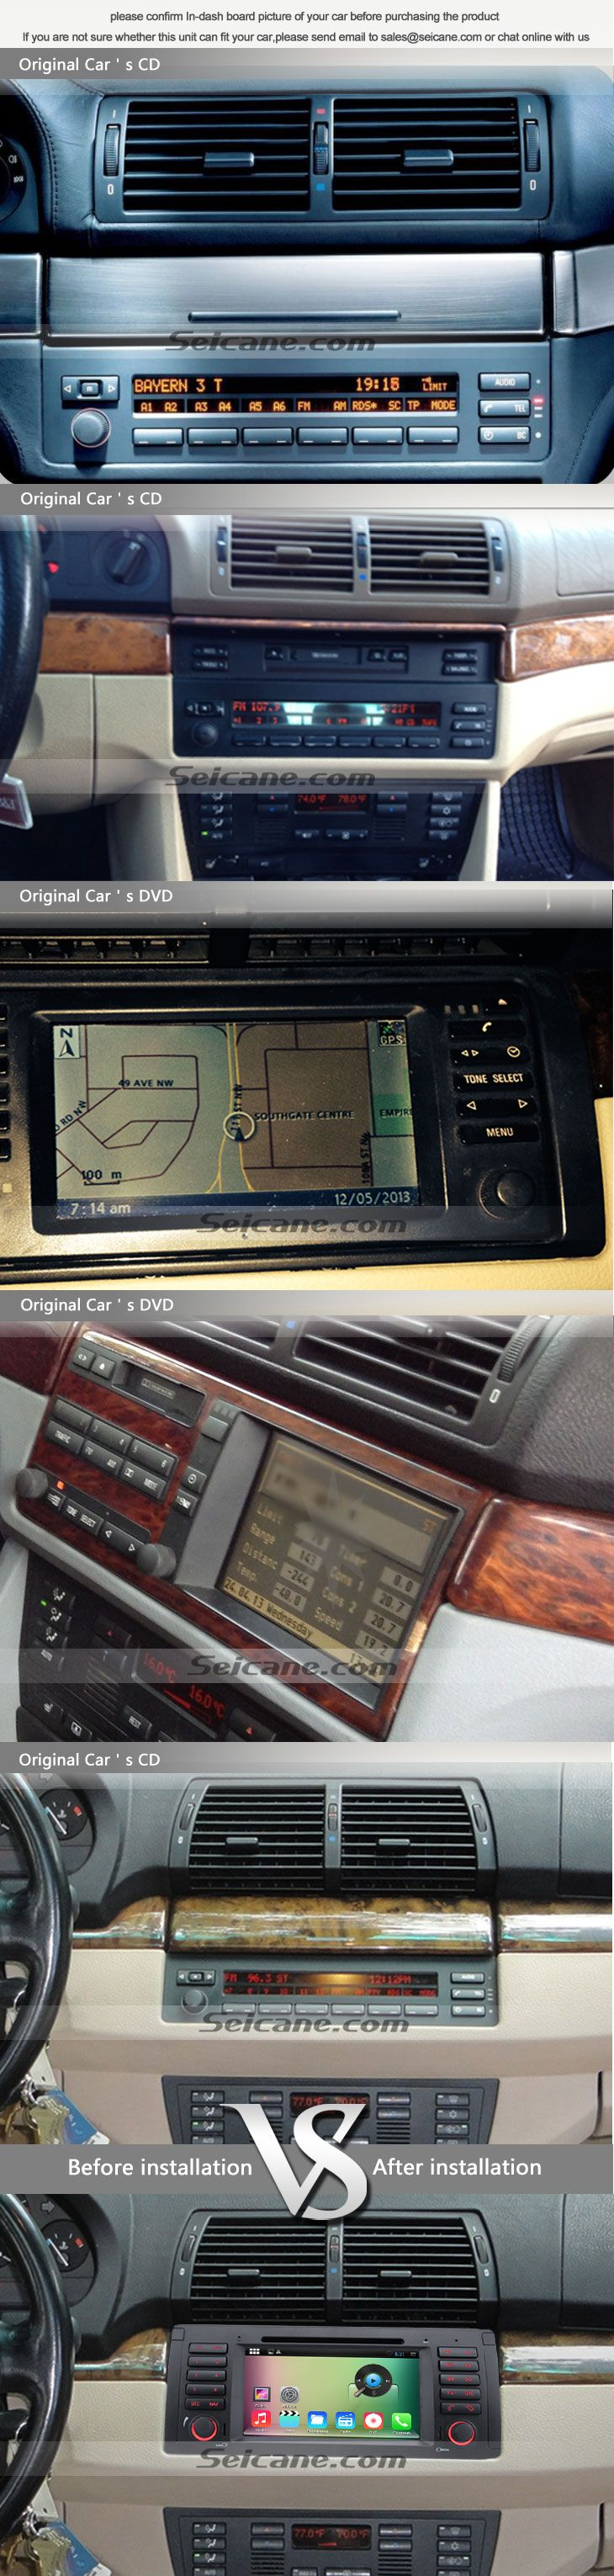 OEM 1996-2003 BMW 5 E39 520i 523i 525i 528i 528i SE 530i 535i 540i M5 aftermarket car stereo navigation system before and after installation